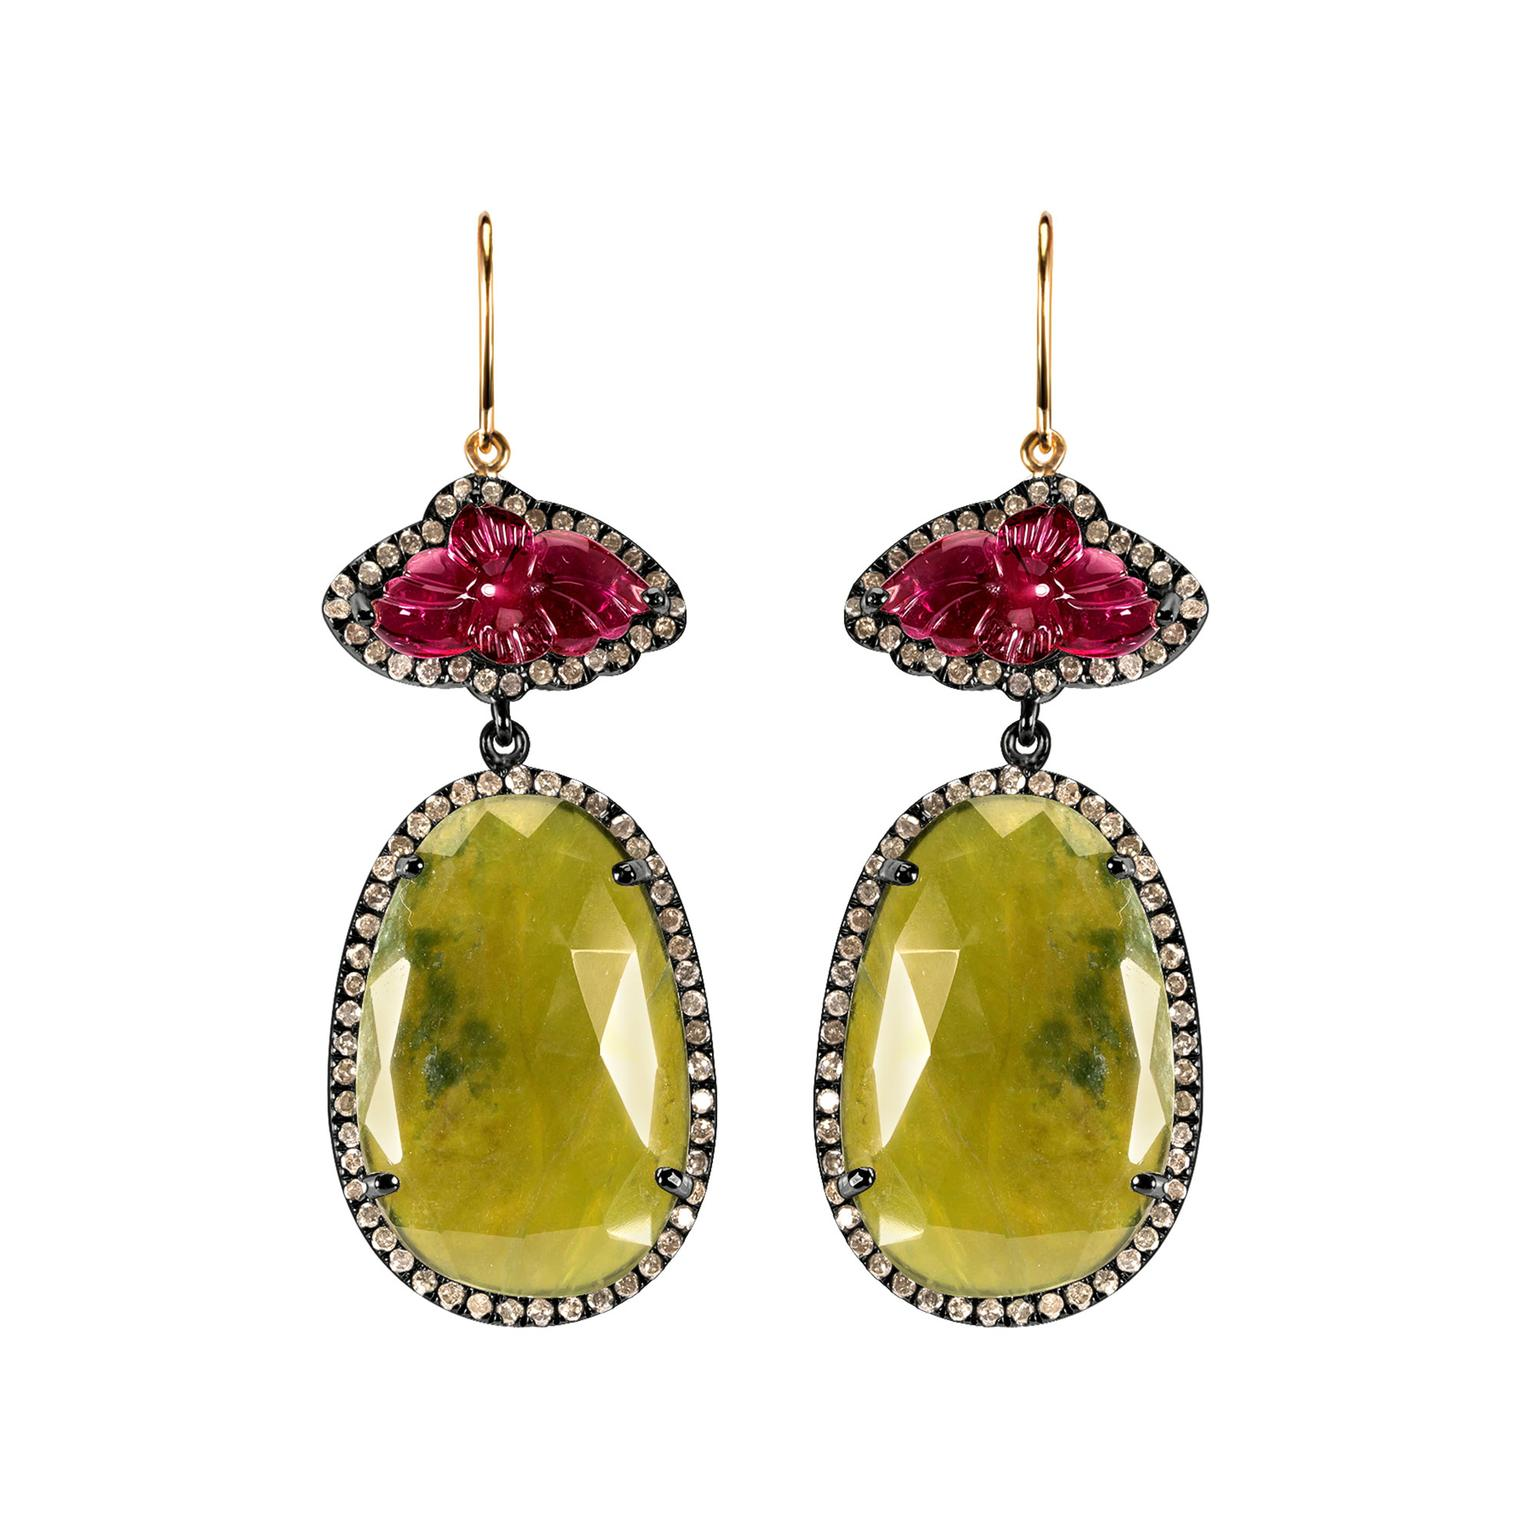 Arya Esha vasonite, tourmaline and diamond drop earrings